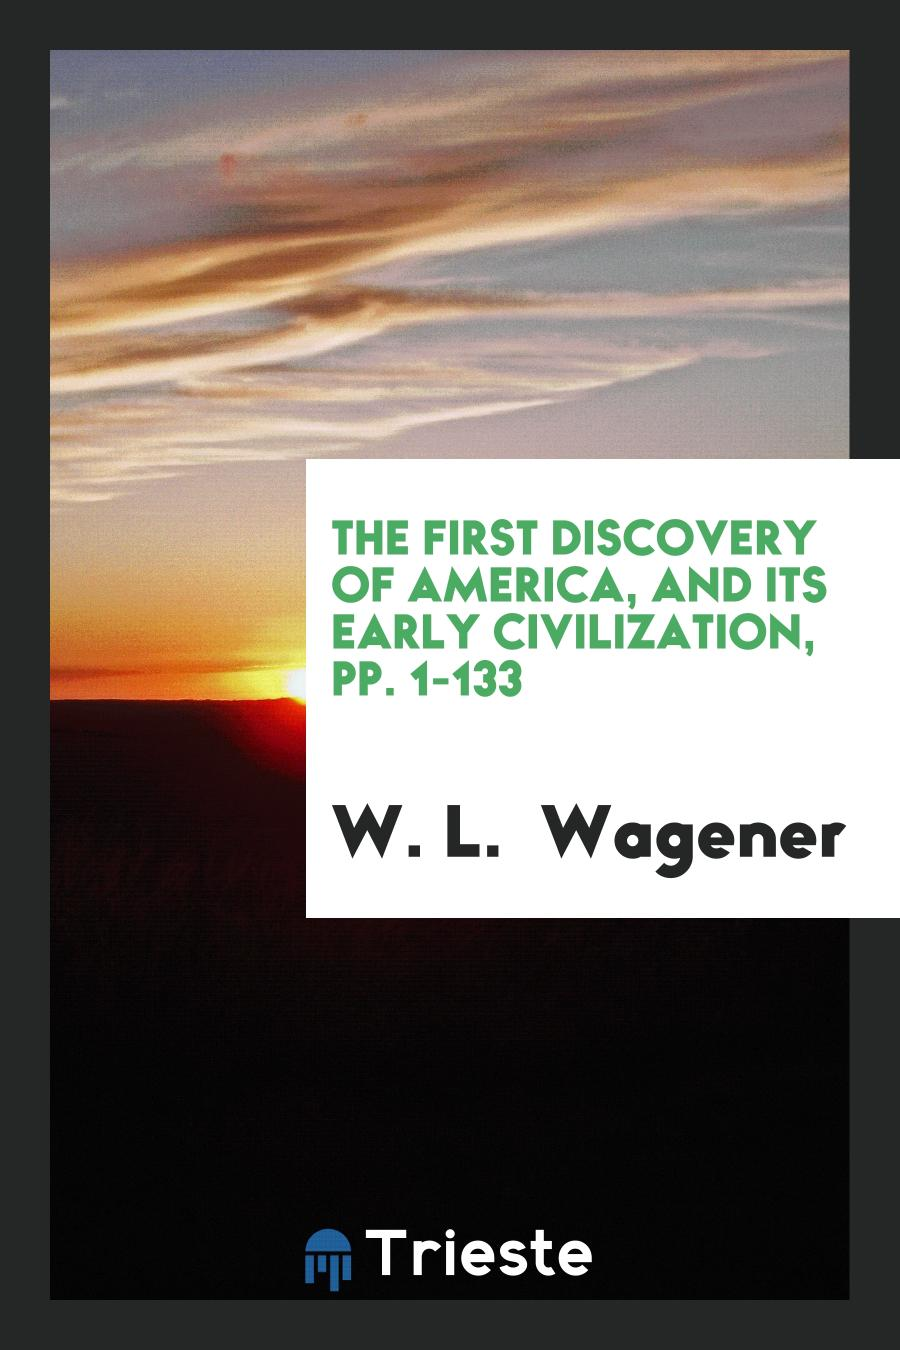 The First Discovery of America, and Its Early Civilization, pp. 1-133